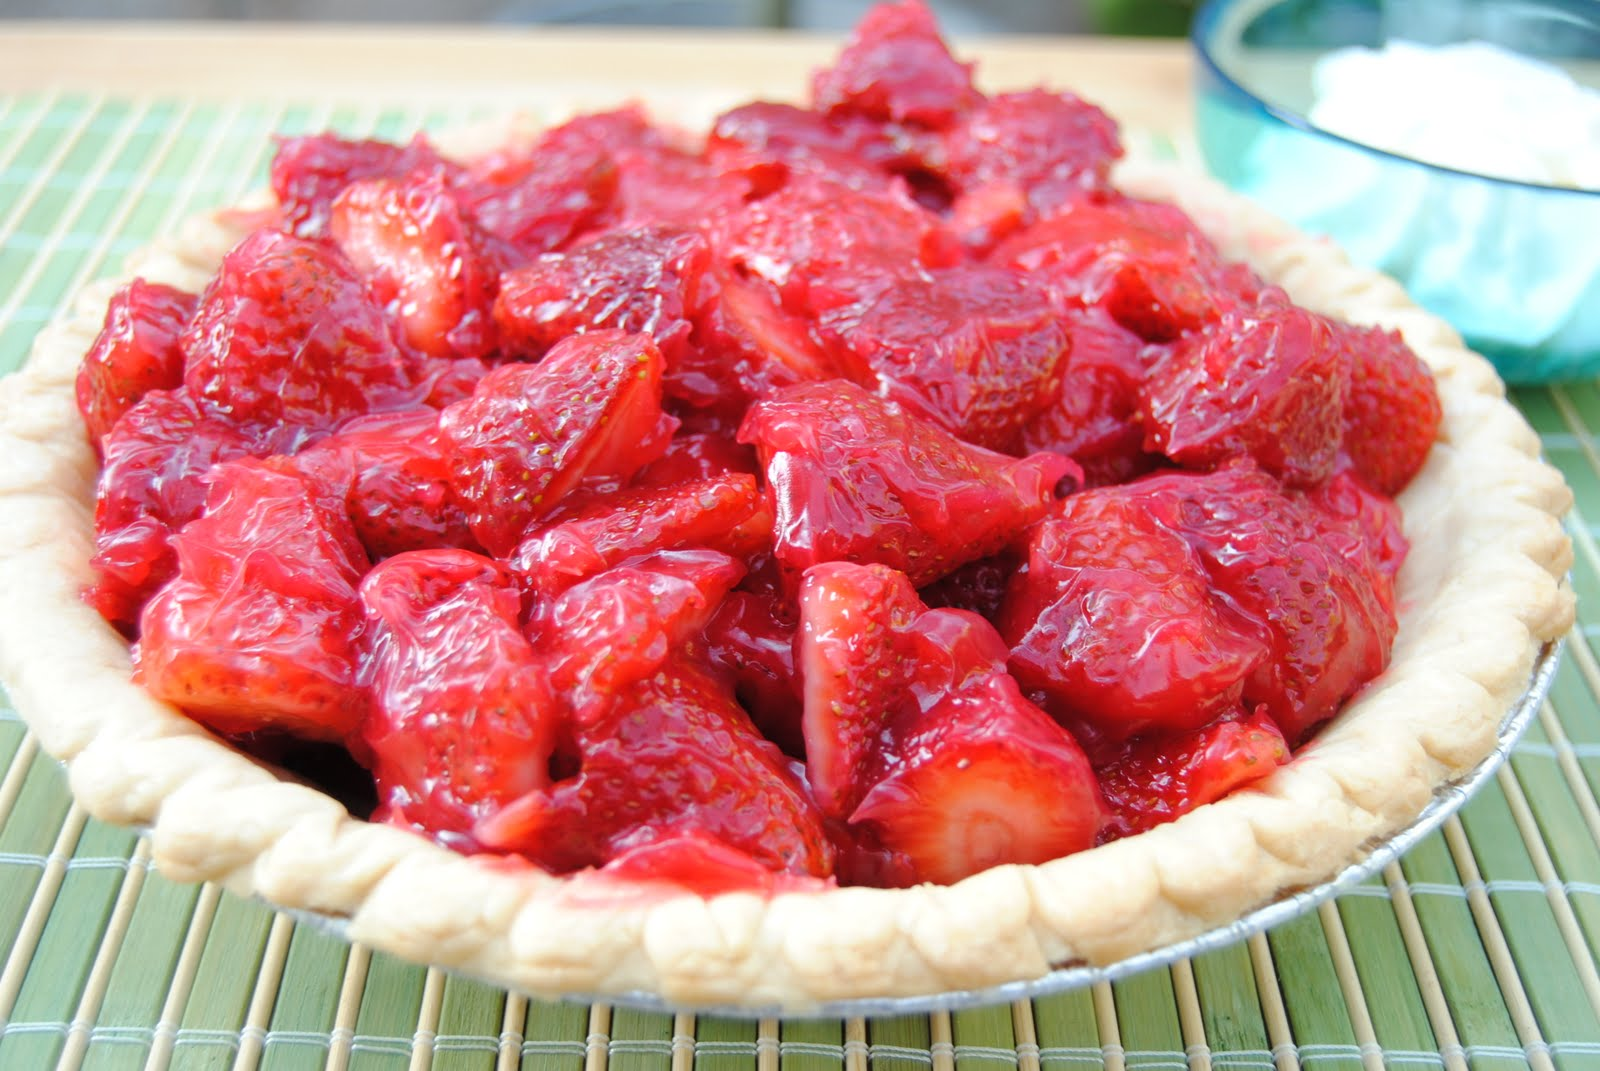 Malikala's Ono Kine Grinds: Fresh Strawberry Pie